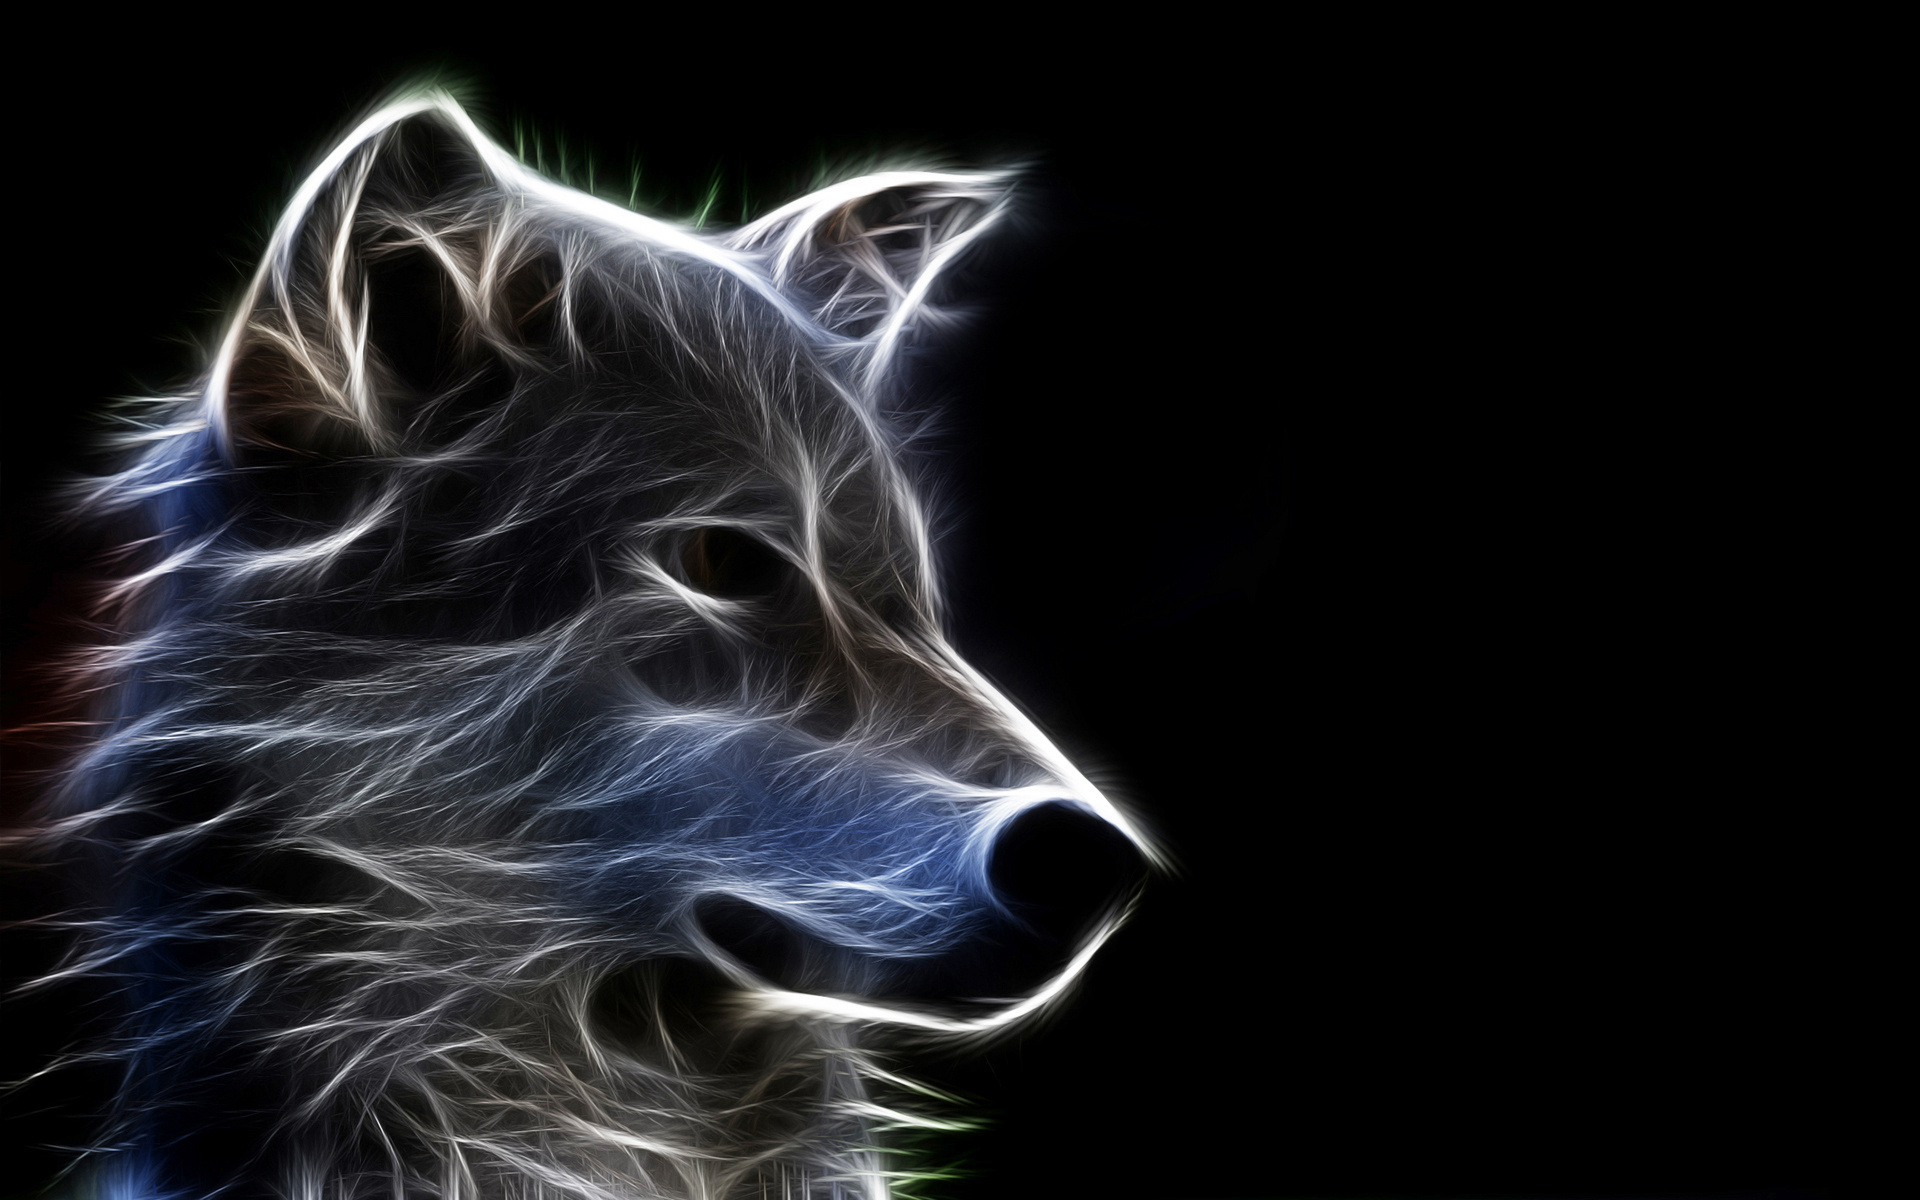 Wolf wallpapers best wallpapers - Cool wallpapers for pc ...